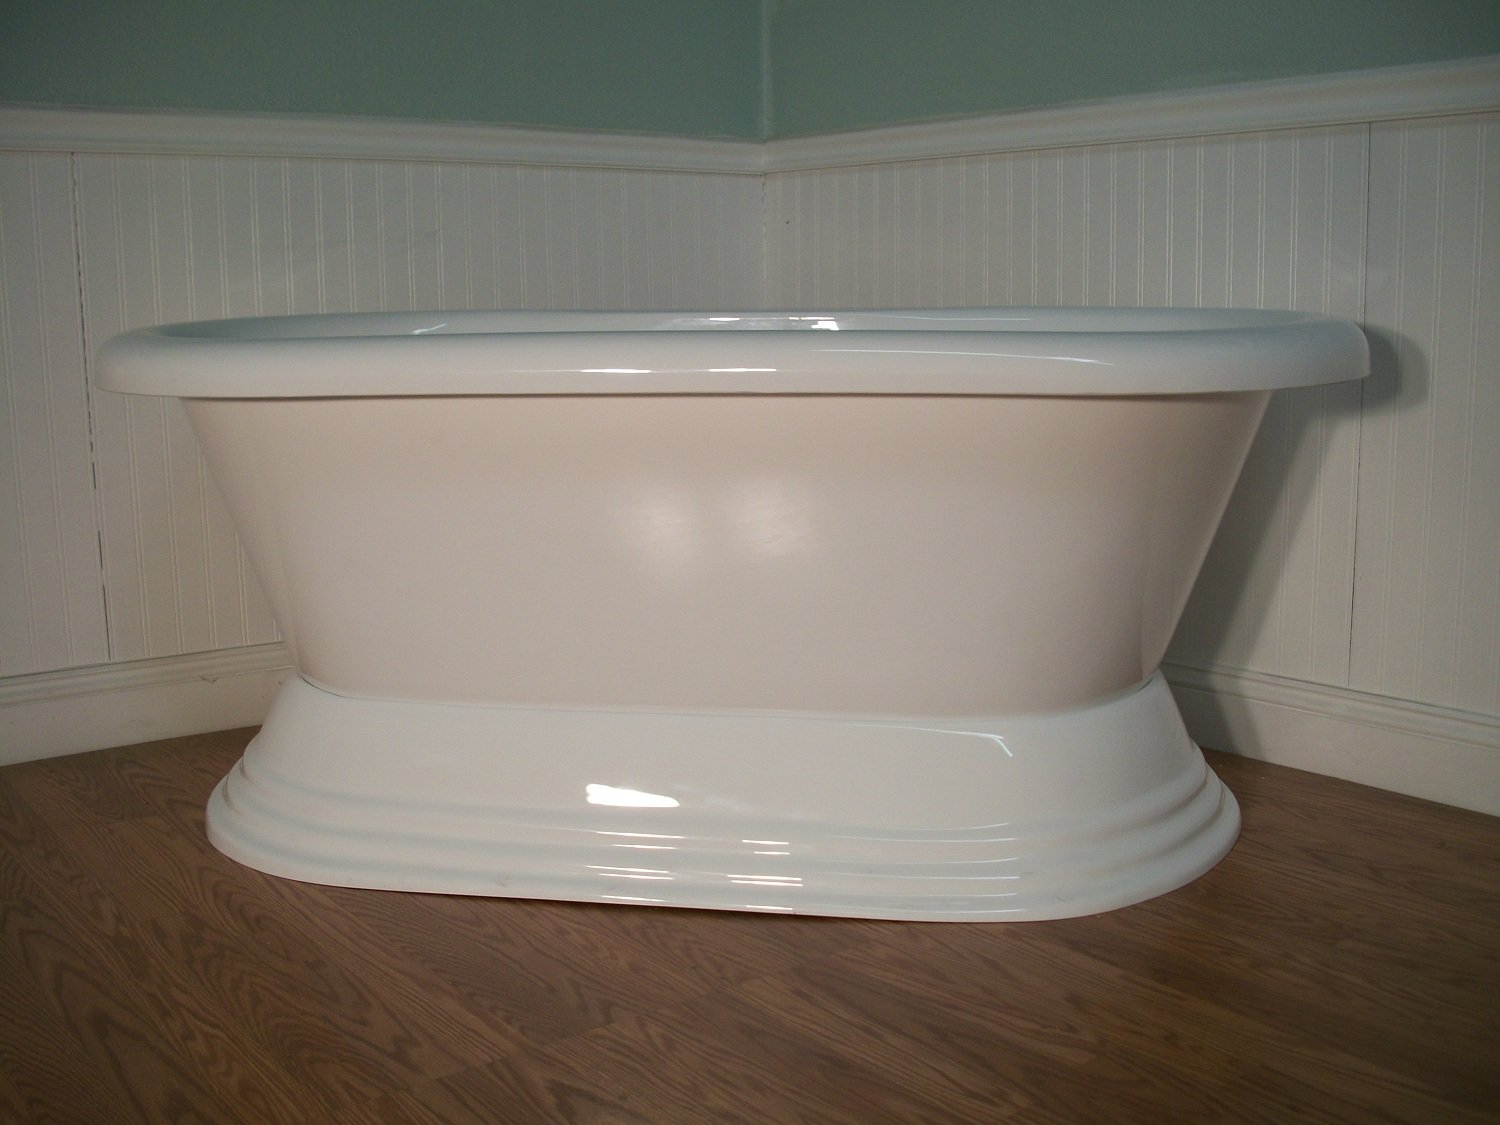 60 free standing pedestal bathtub drainset clawfoot for How long is a standard bathtub